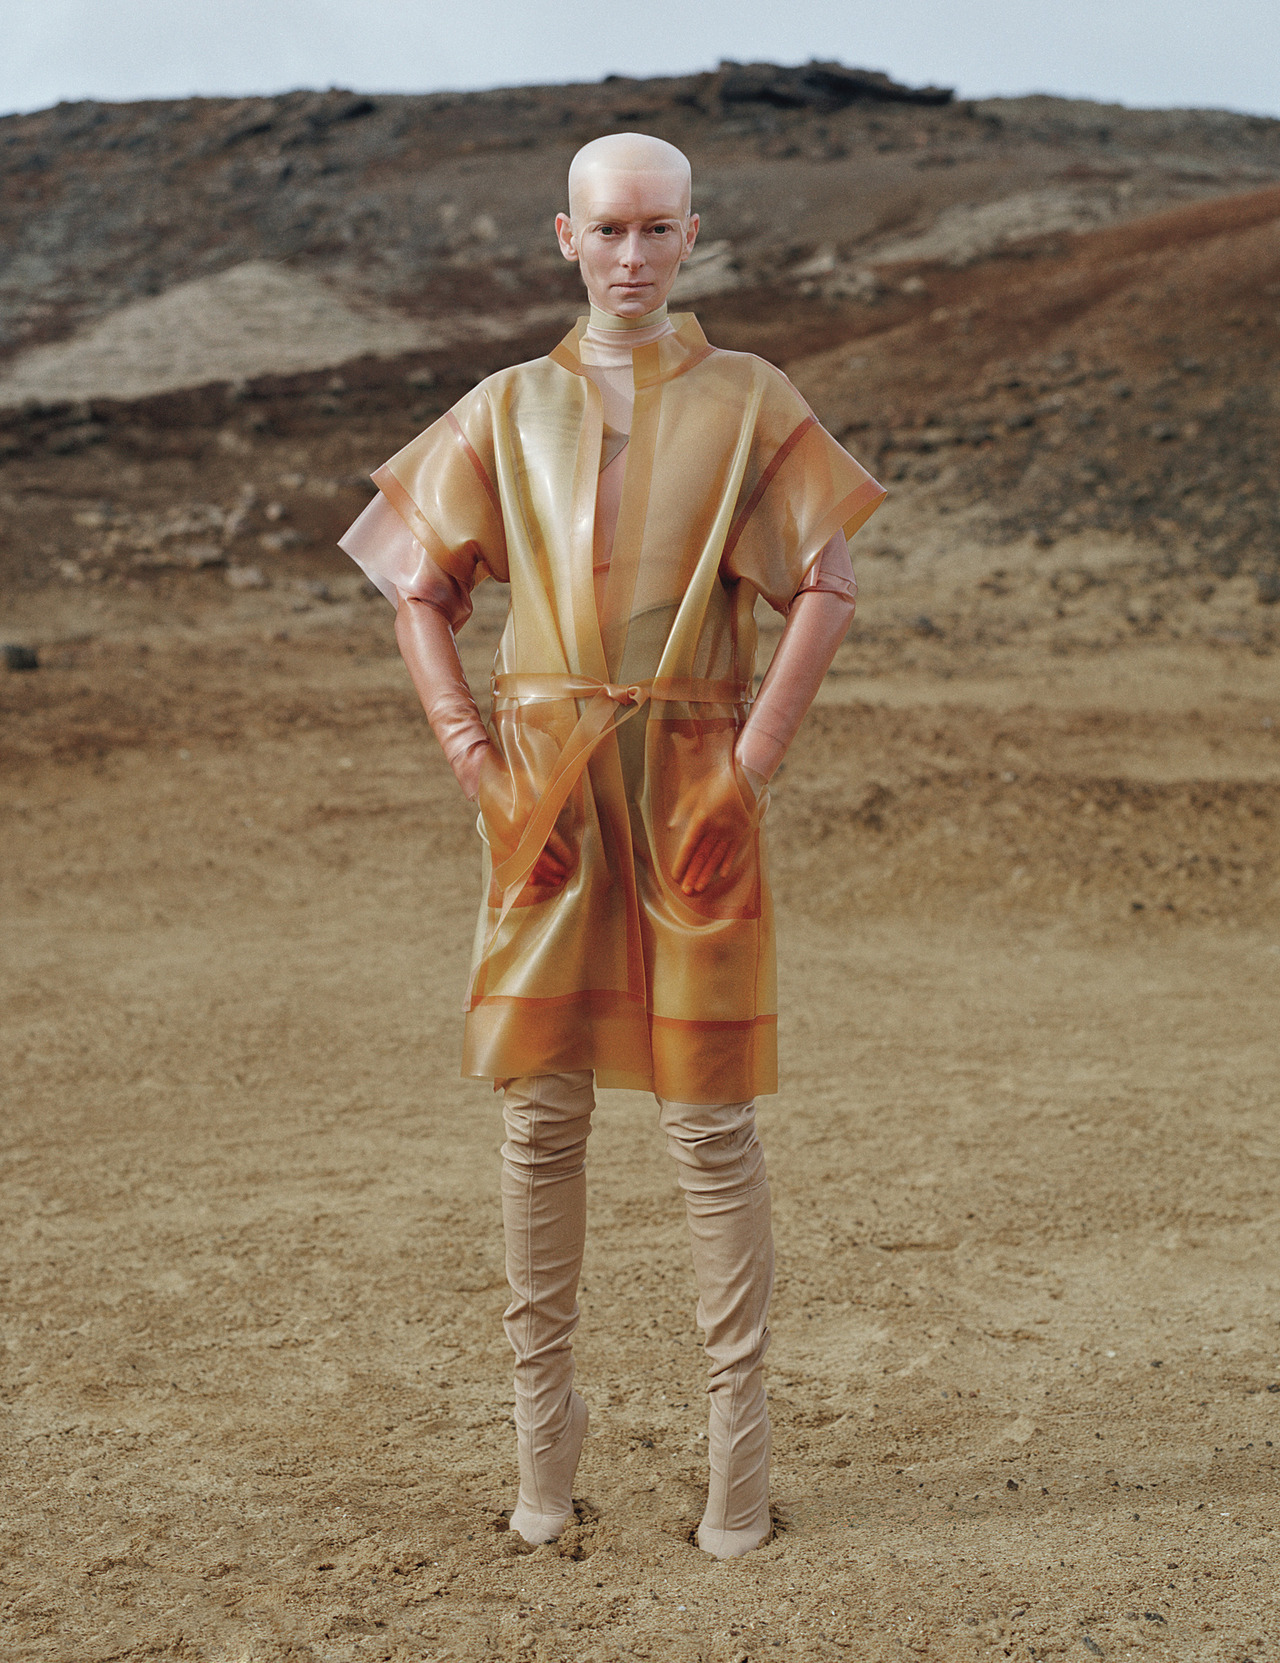 Photo by Tim Walker We landed on Mars…and found a Tilda Swinton! We come in peace…